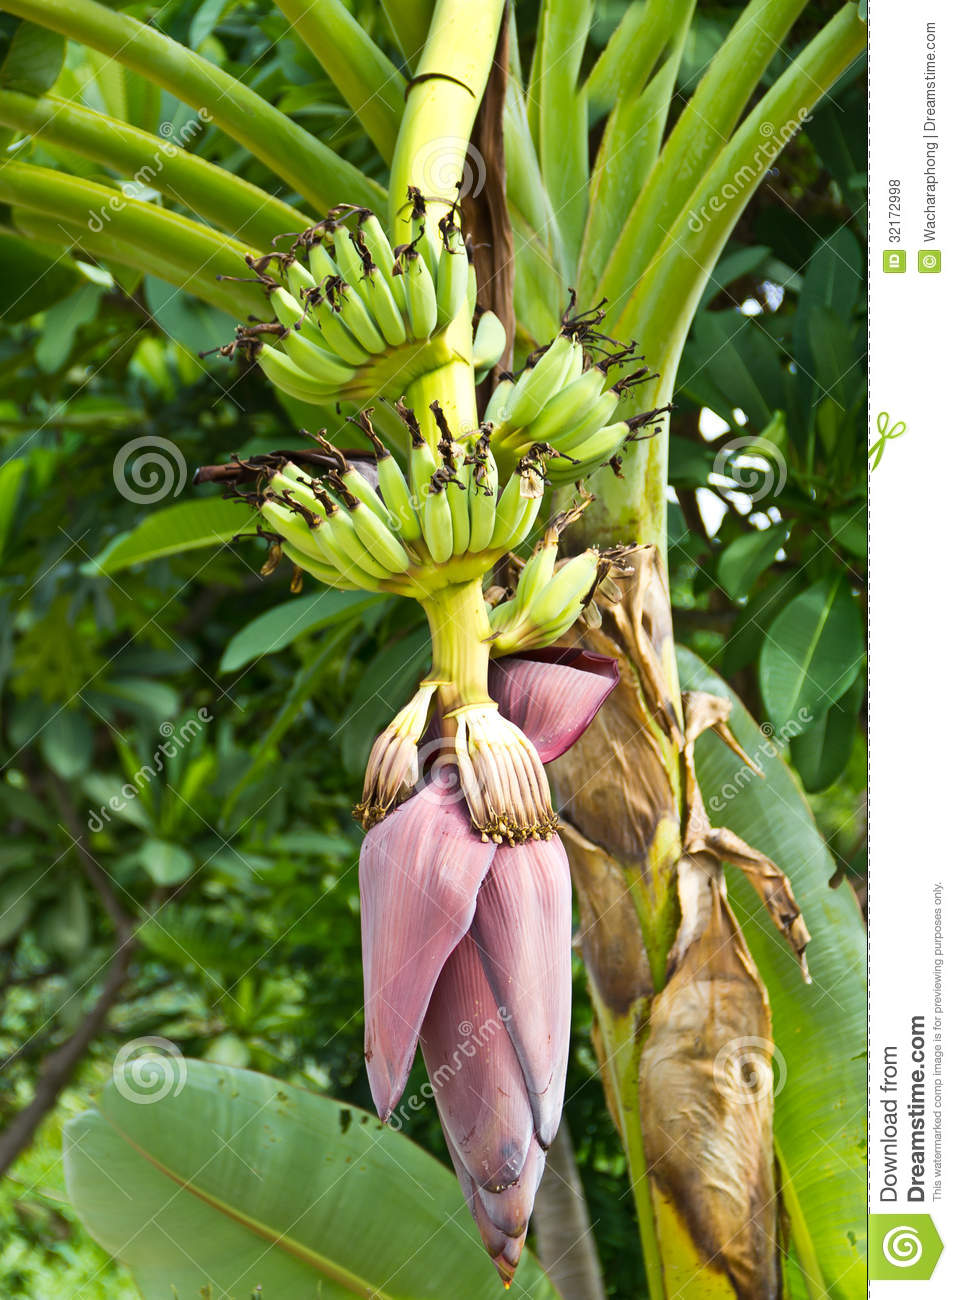 how to use banana blossom